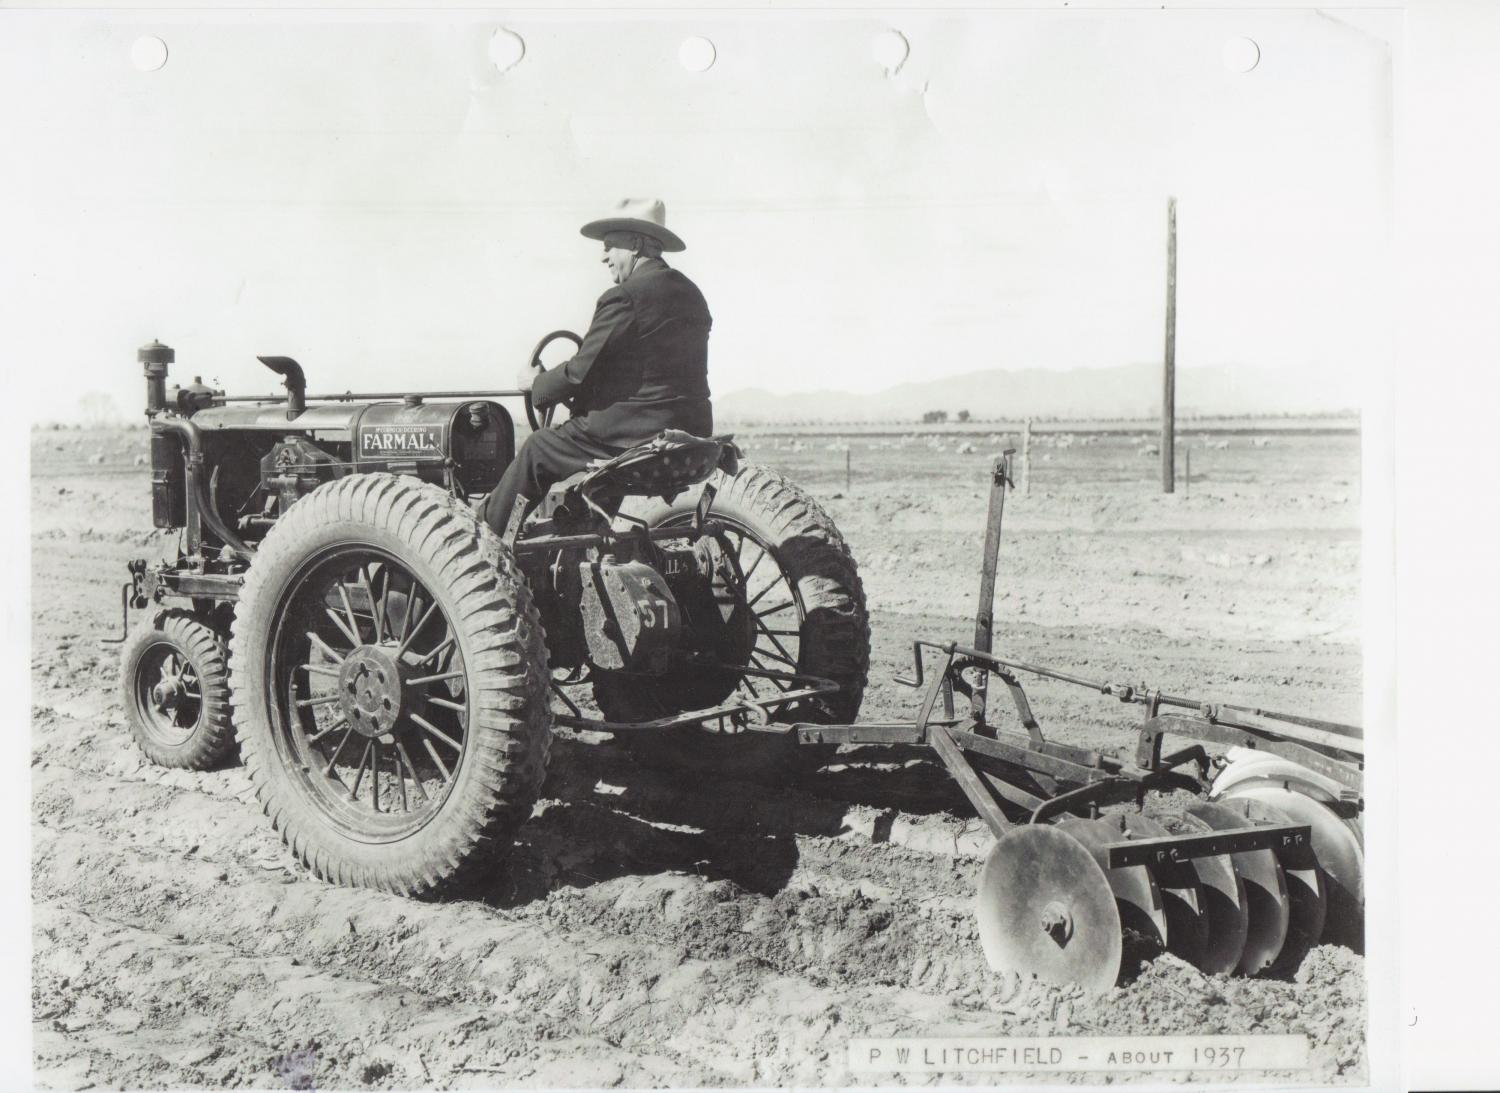 Paul Litchfield on a tractor